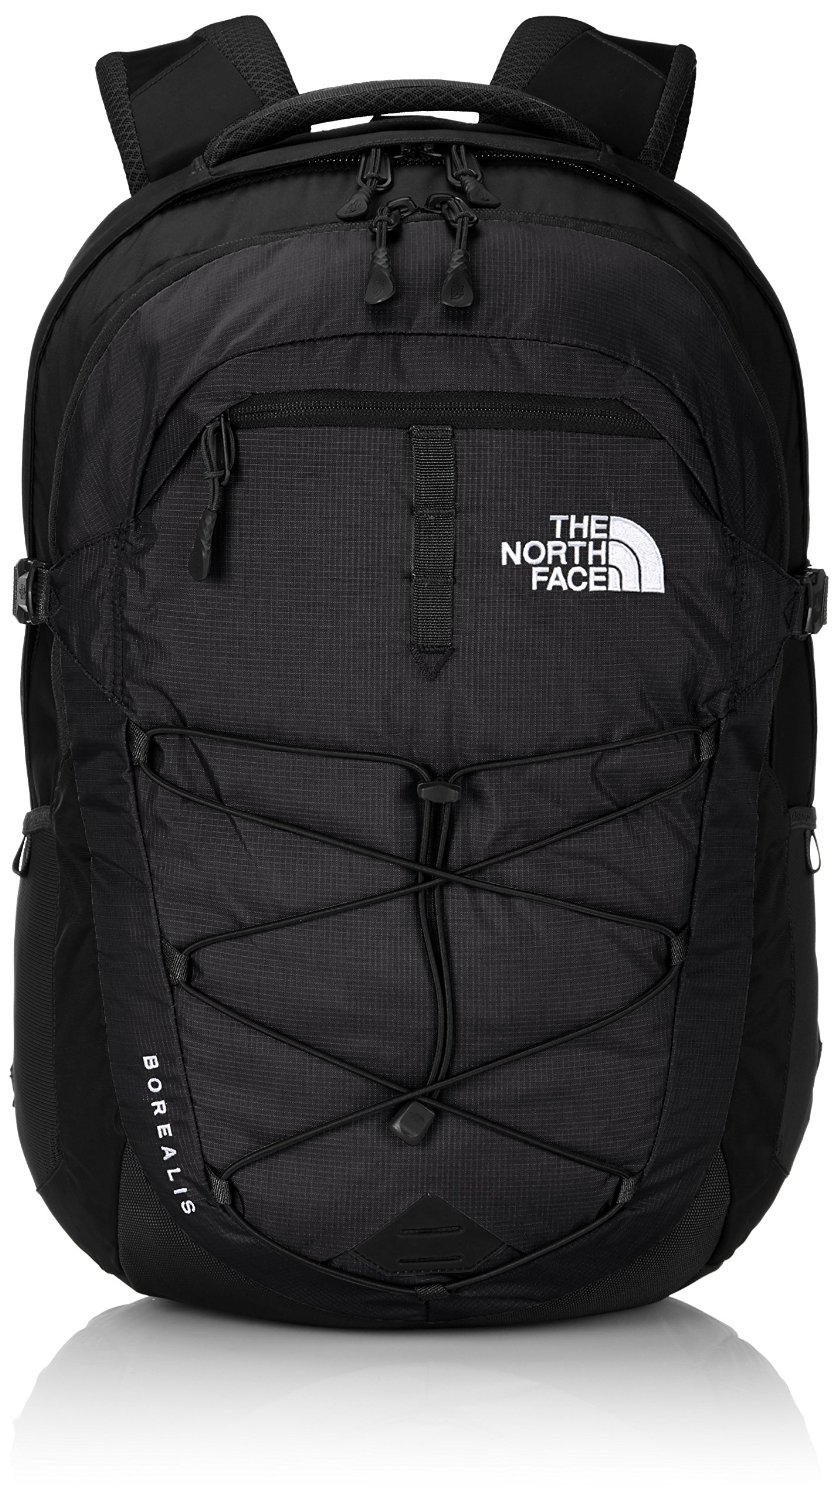 f60084a74 North Face Backpack Price In Dubai - CEAGESP